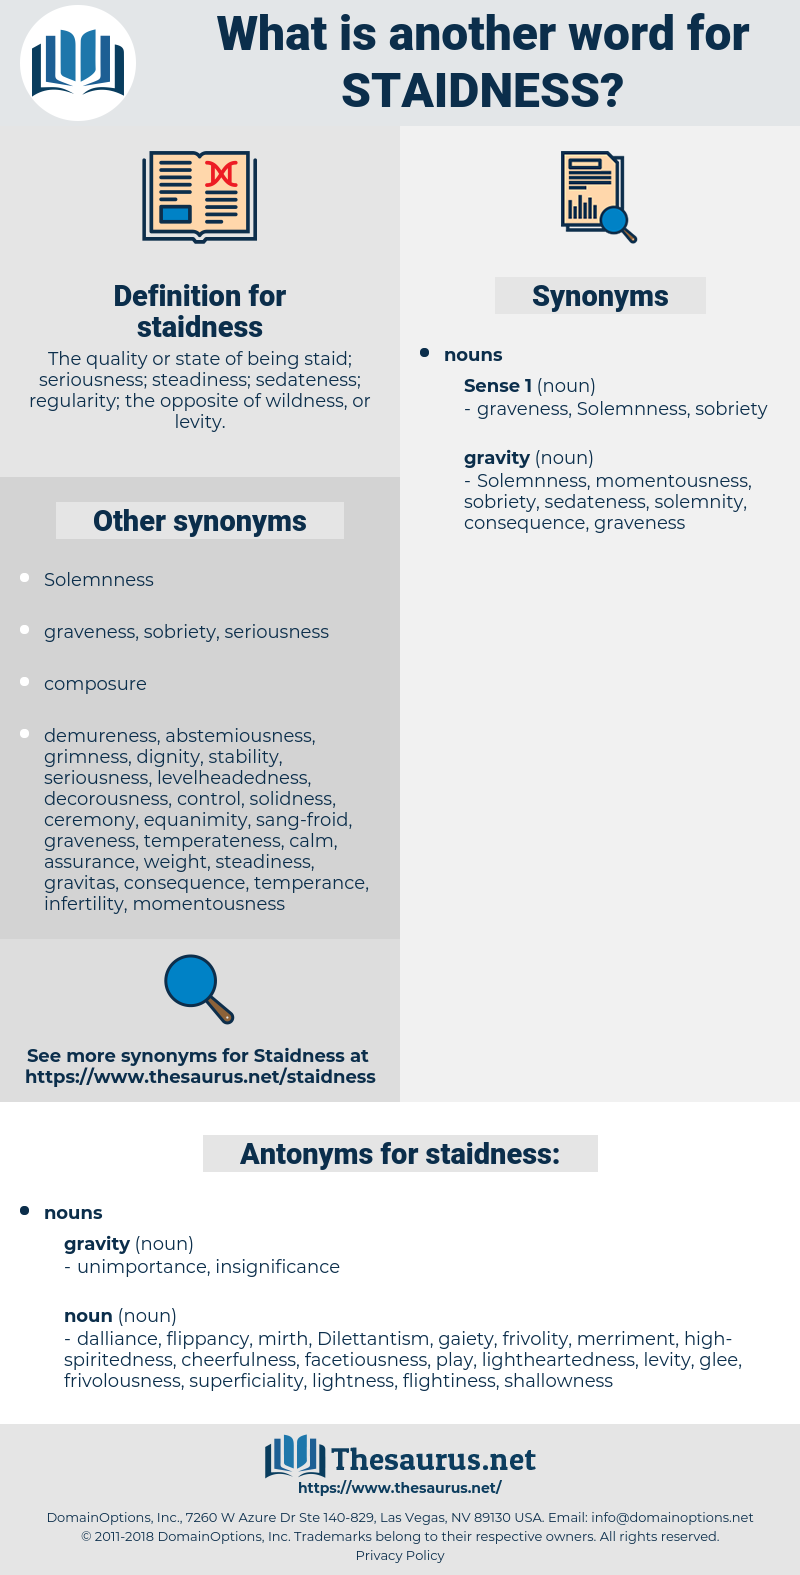 staidness, synonym staidness, another word for staidness, words like staidness, thesaurus staidness